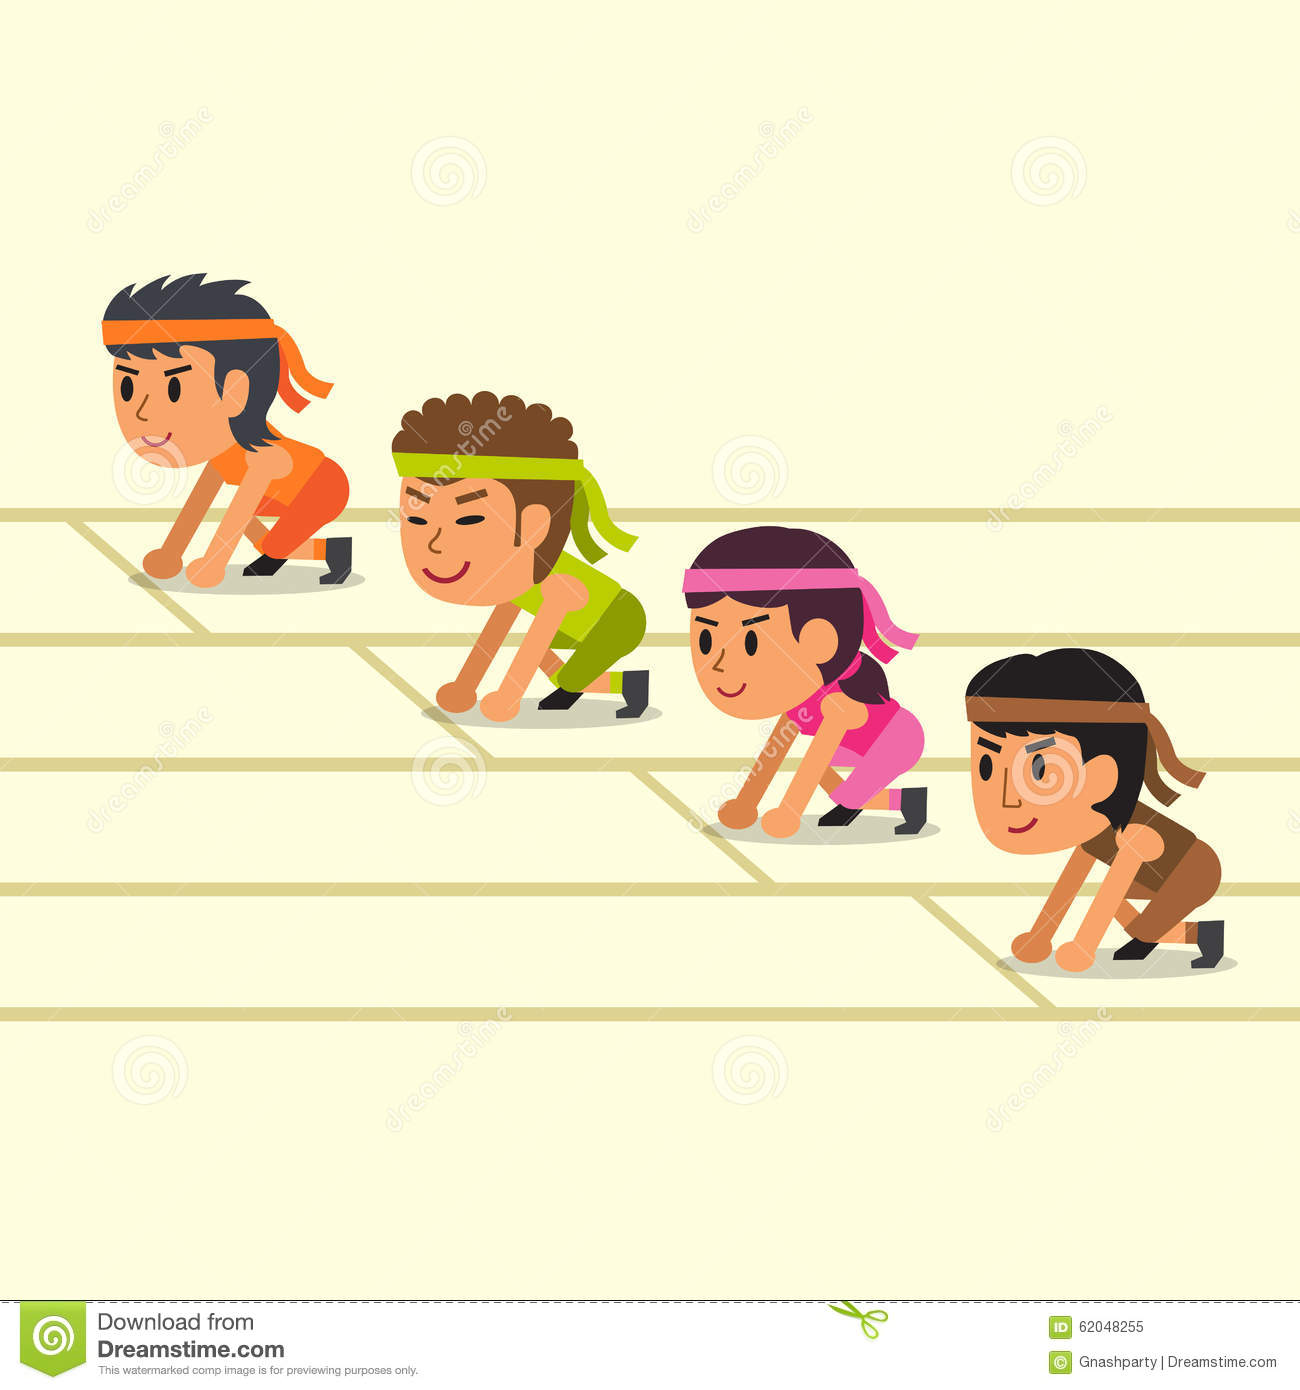 Cartoon Sport People Ready To Run Stock Vector - Image: 62048255 Zebra Weight